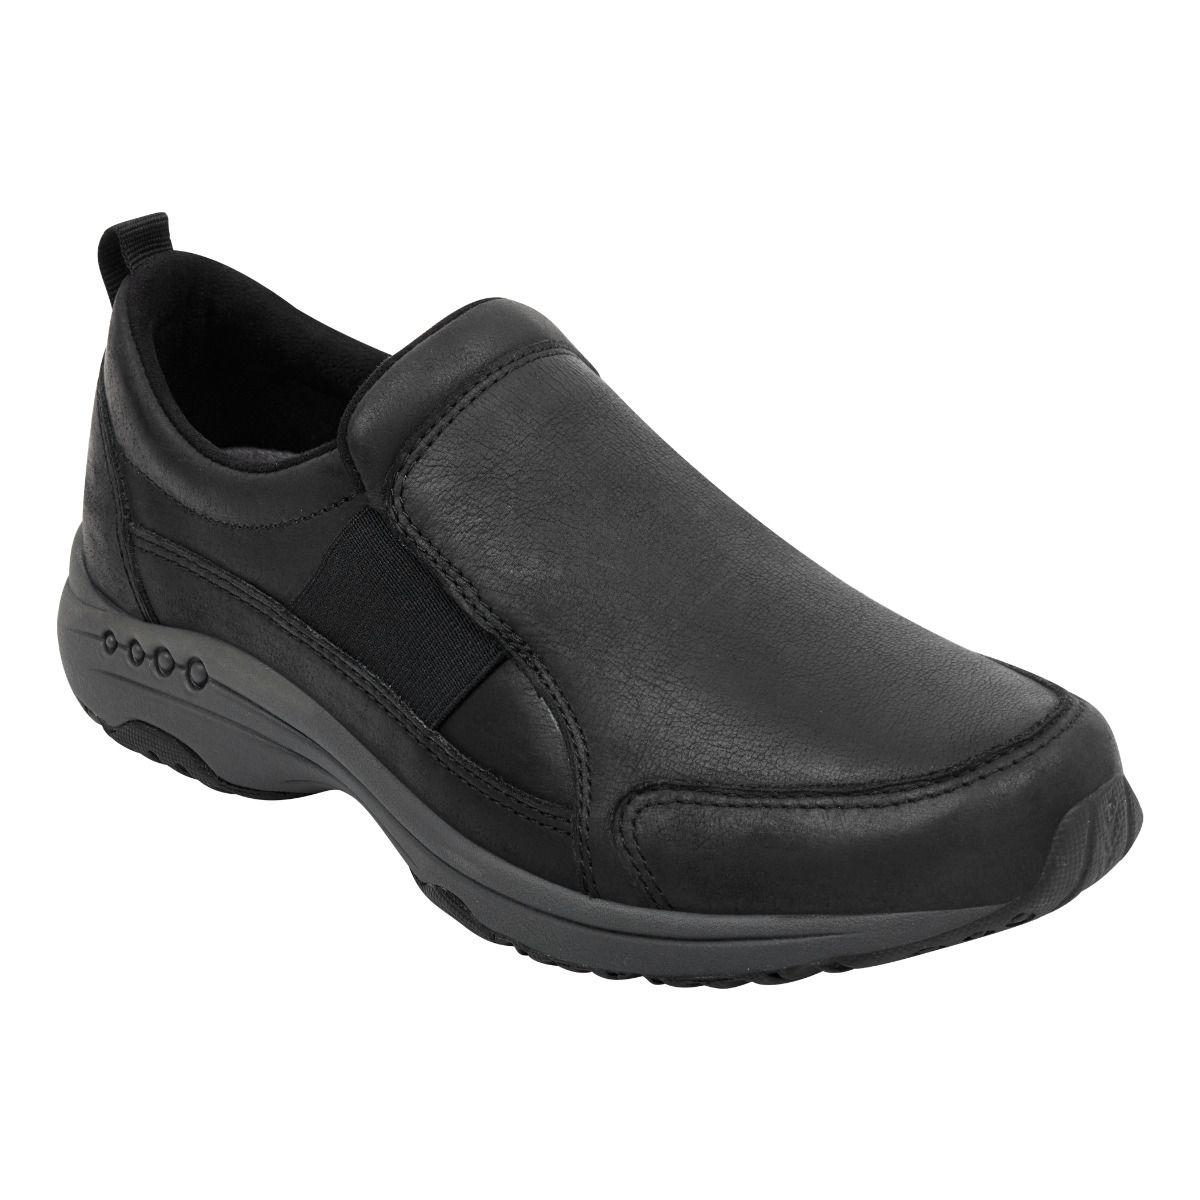 Trippe Casual Walking Shoes